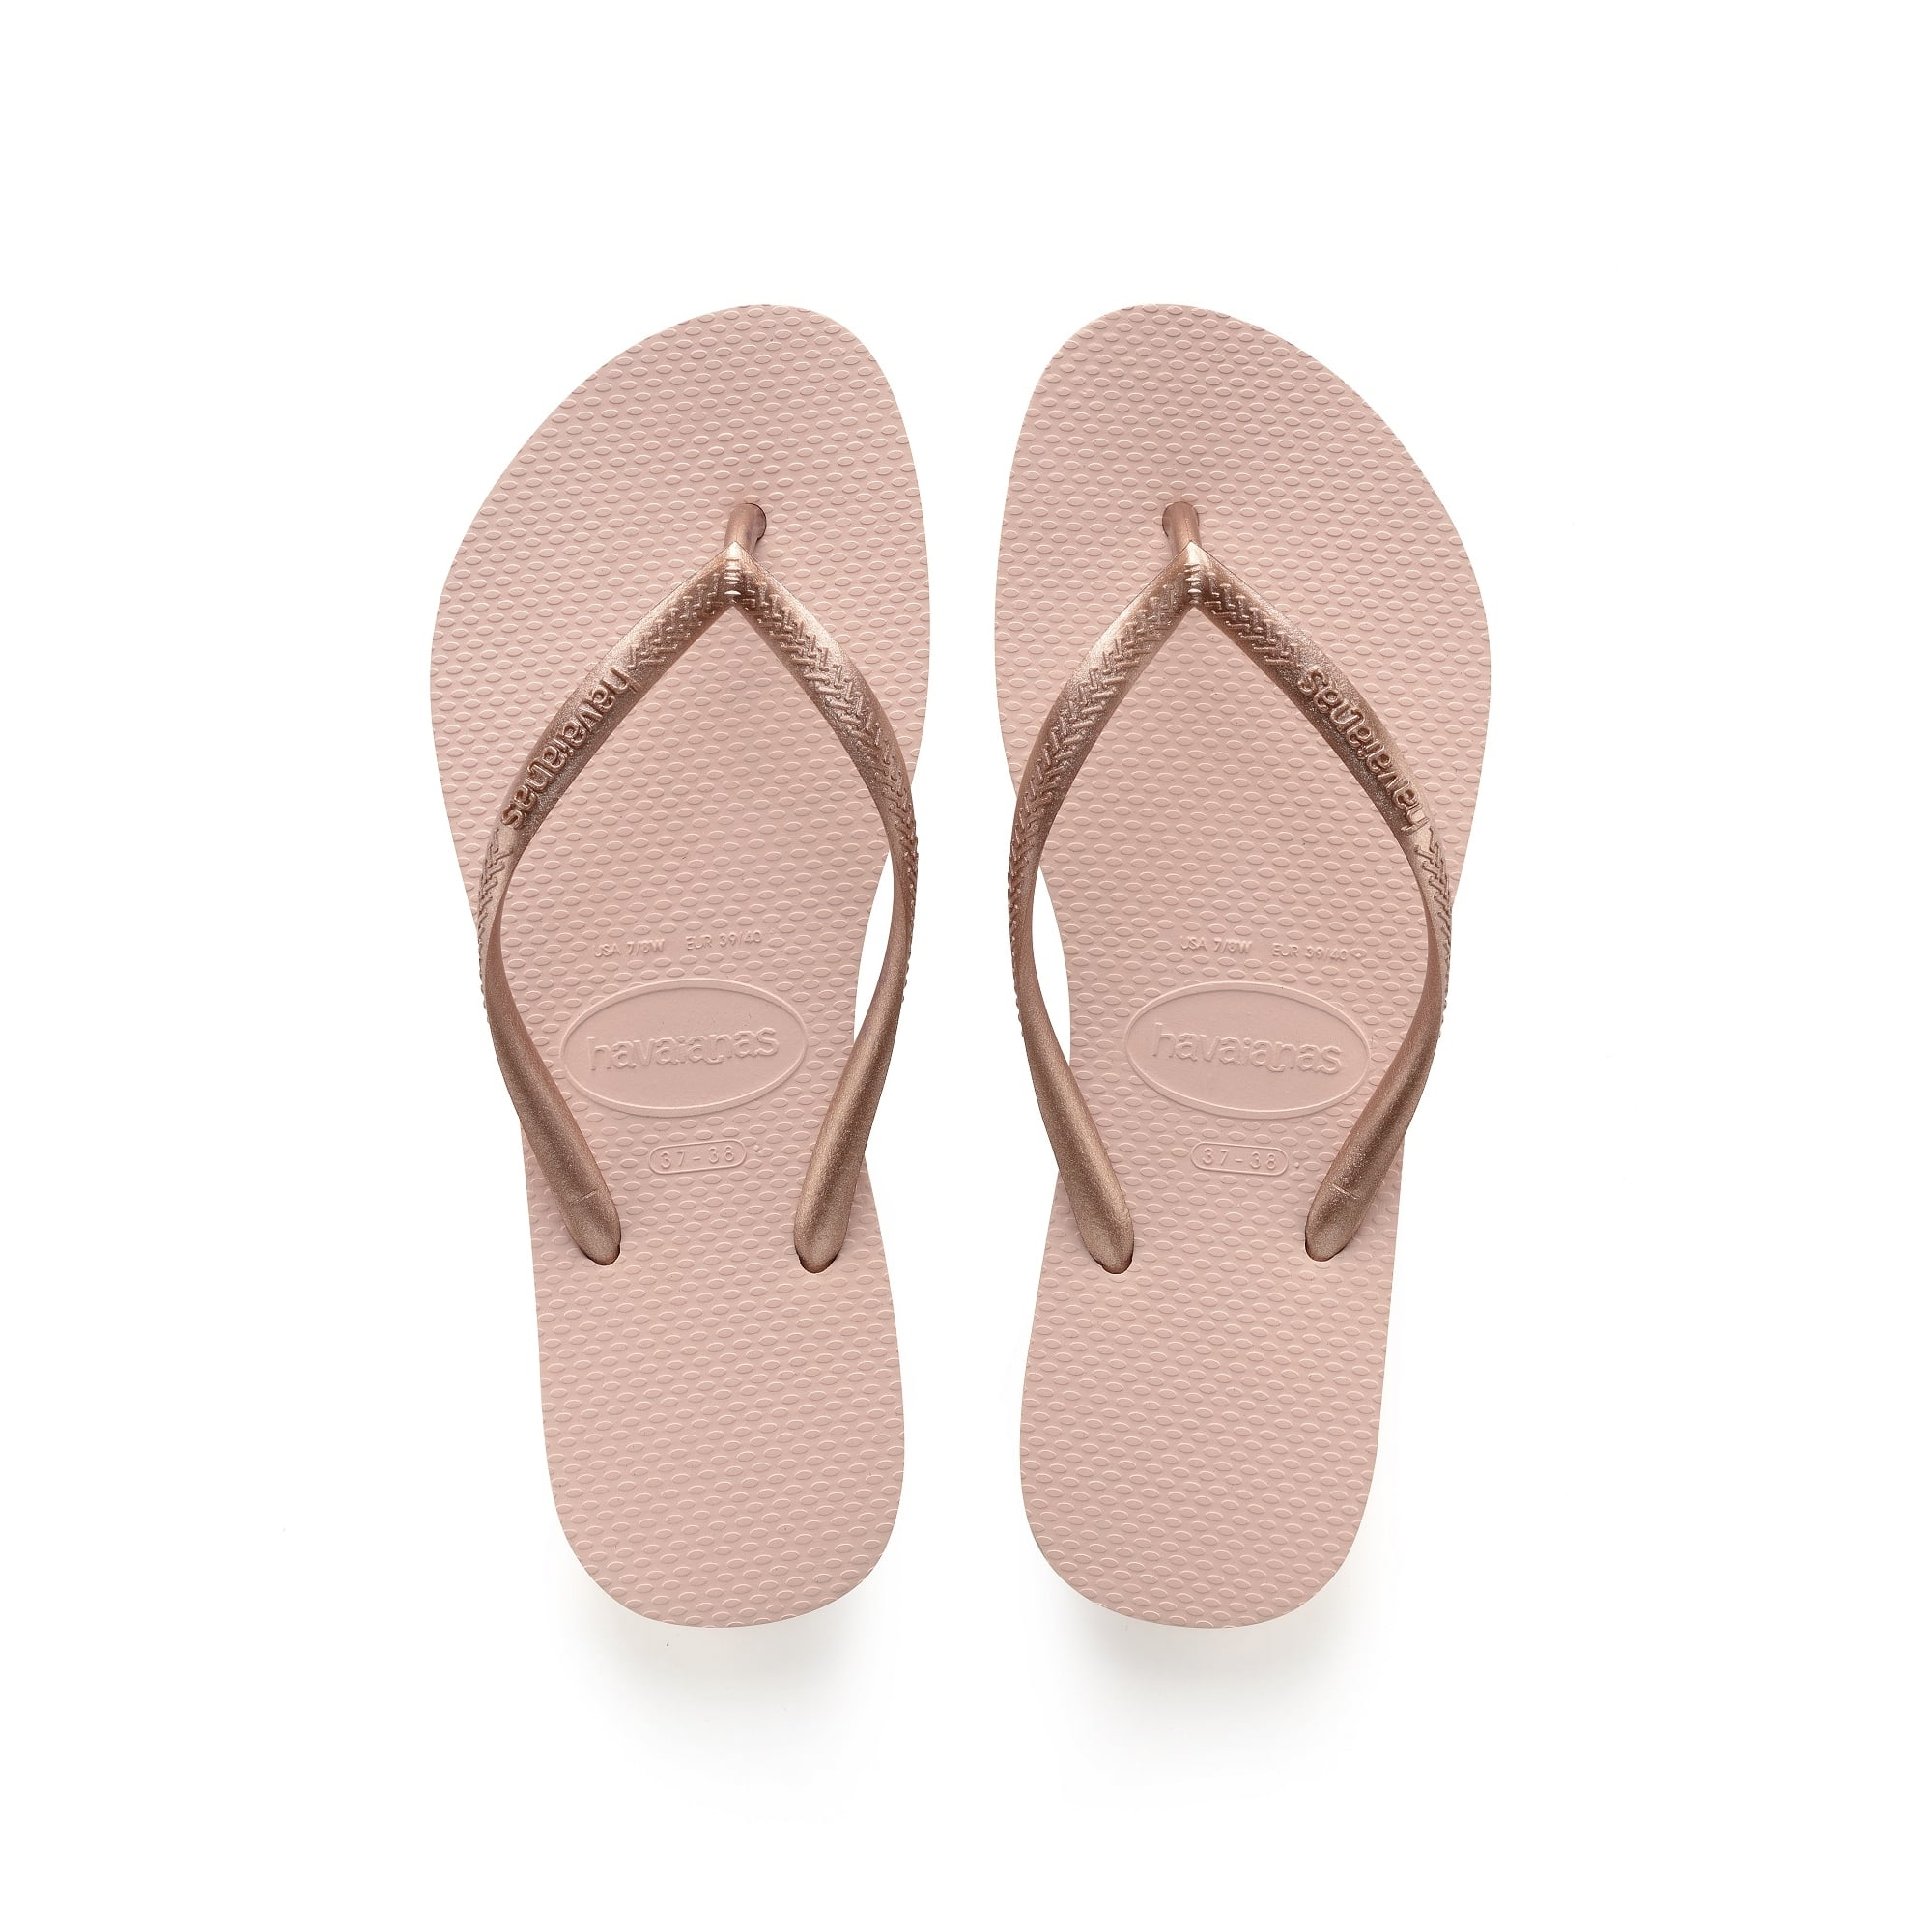 3f2accf0b26 HAVAIANAS Slim Flip Flop in Ballet Rose - Woman from Collen   Clare UK